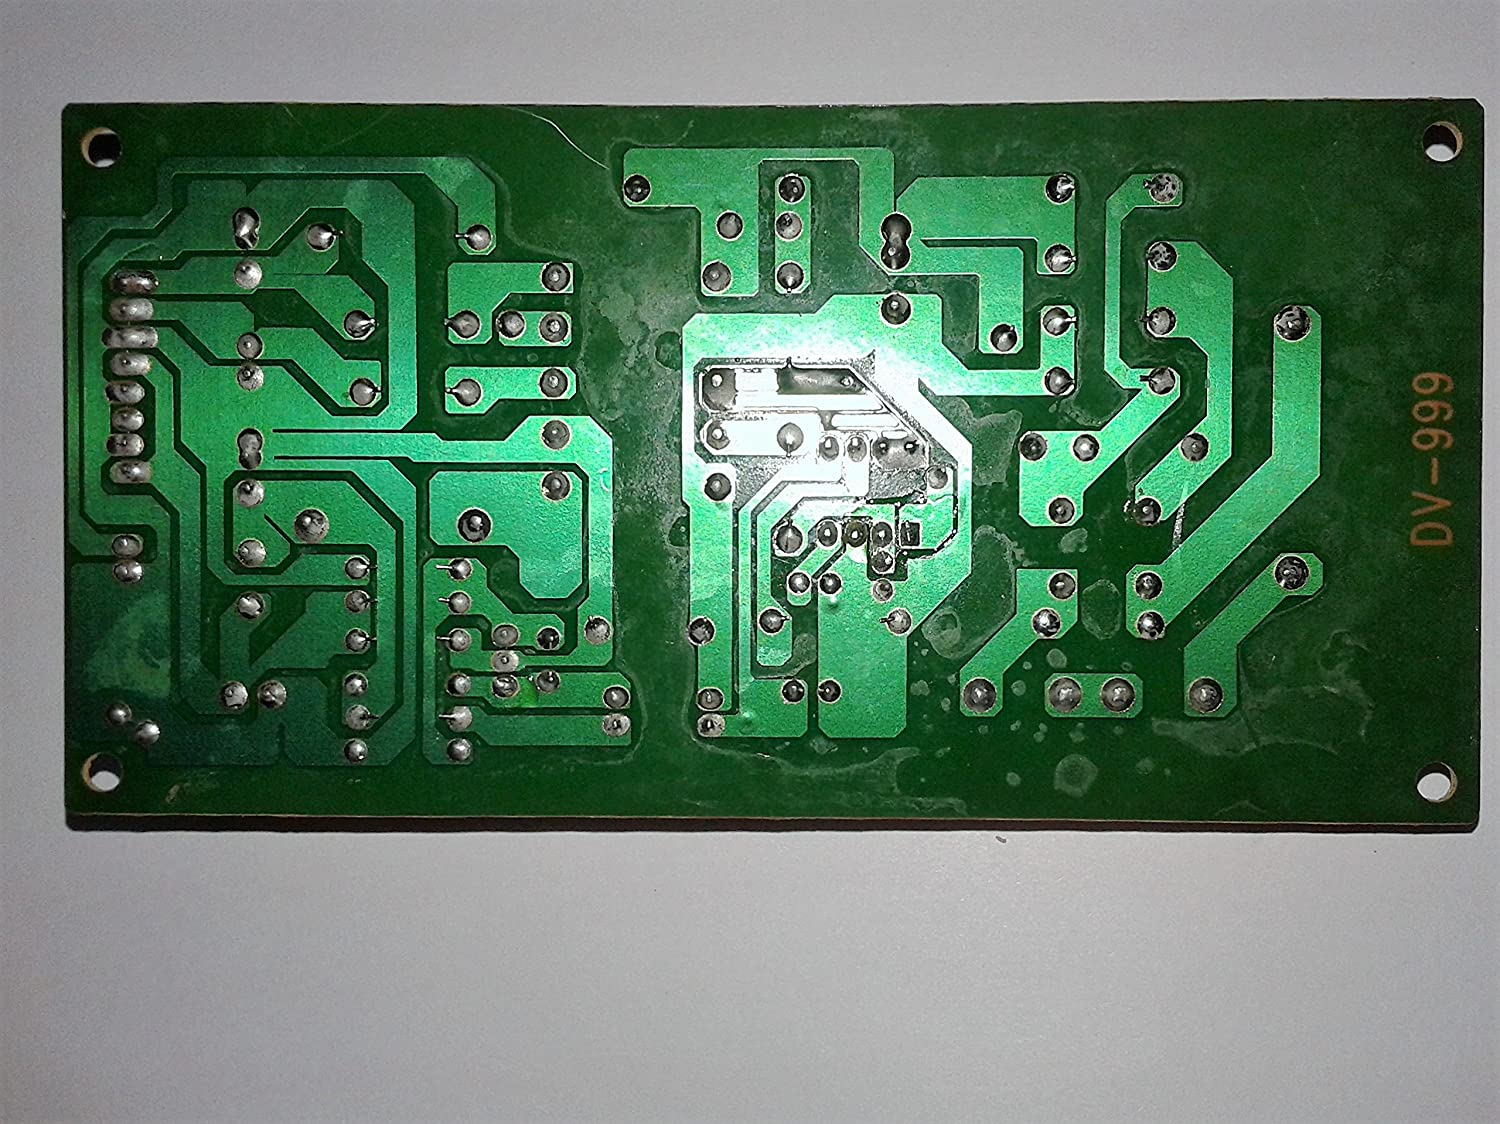 Buy 5 V 12v Adapter Power Supply Board Dvd Circuit Smps Tablet Multi Volt Online At Low Prices In India